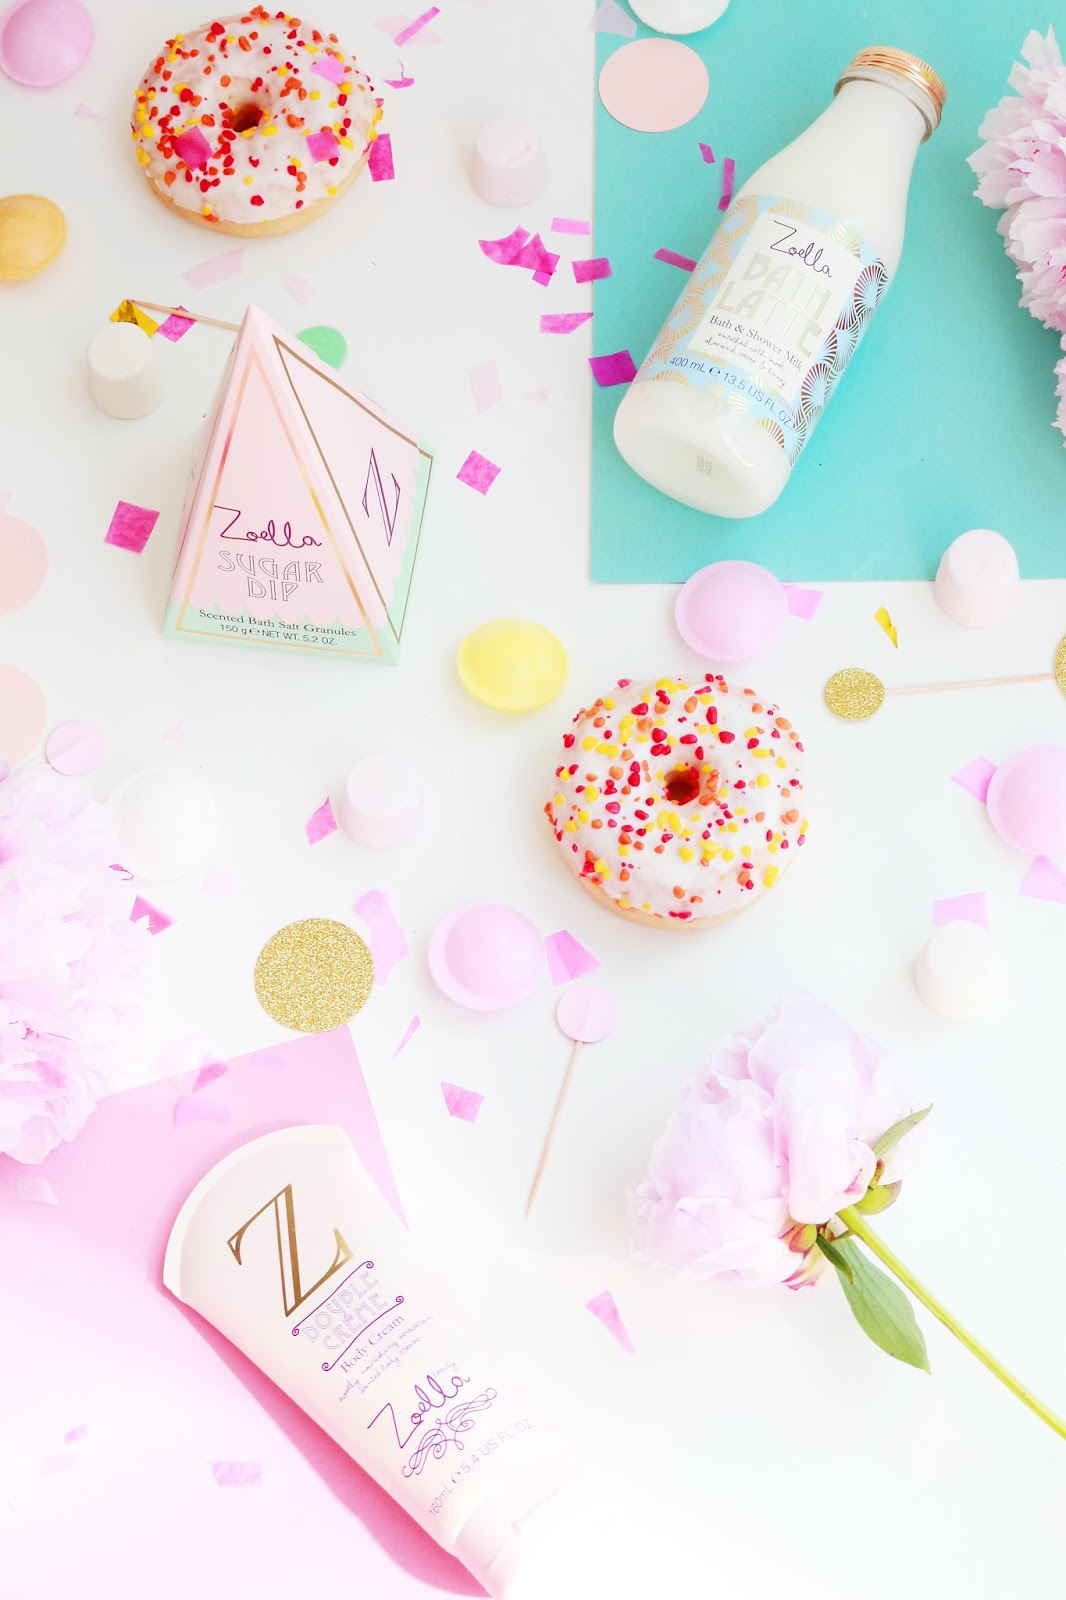 Zoella roller skates - There S 8 Products In The Range Ranging From Body Lotion Bath Salts Make Up Bags And A Body Mist I Have The Bath Latte A Creamy Bath And Shower Milk